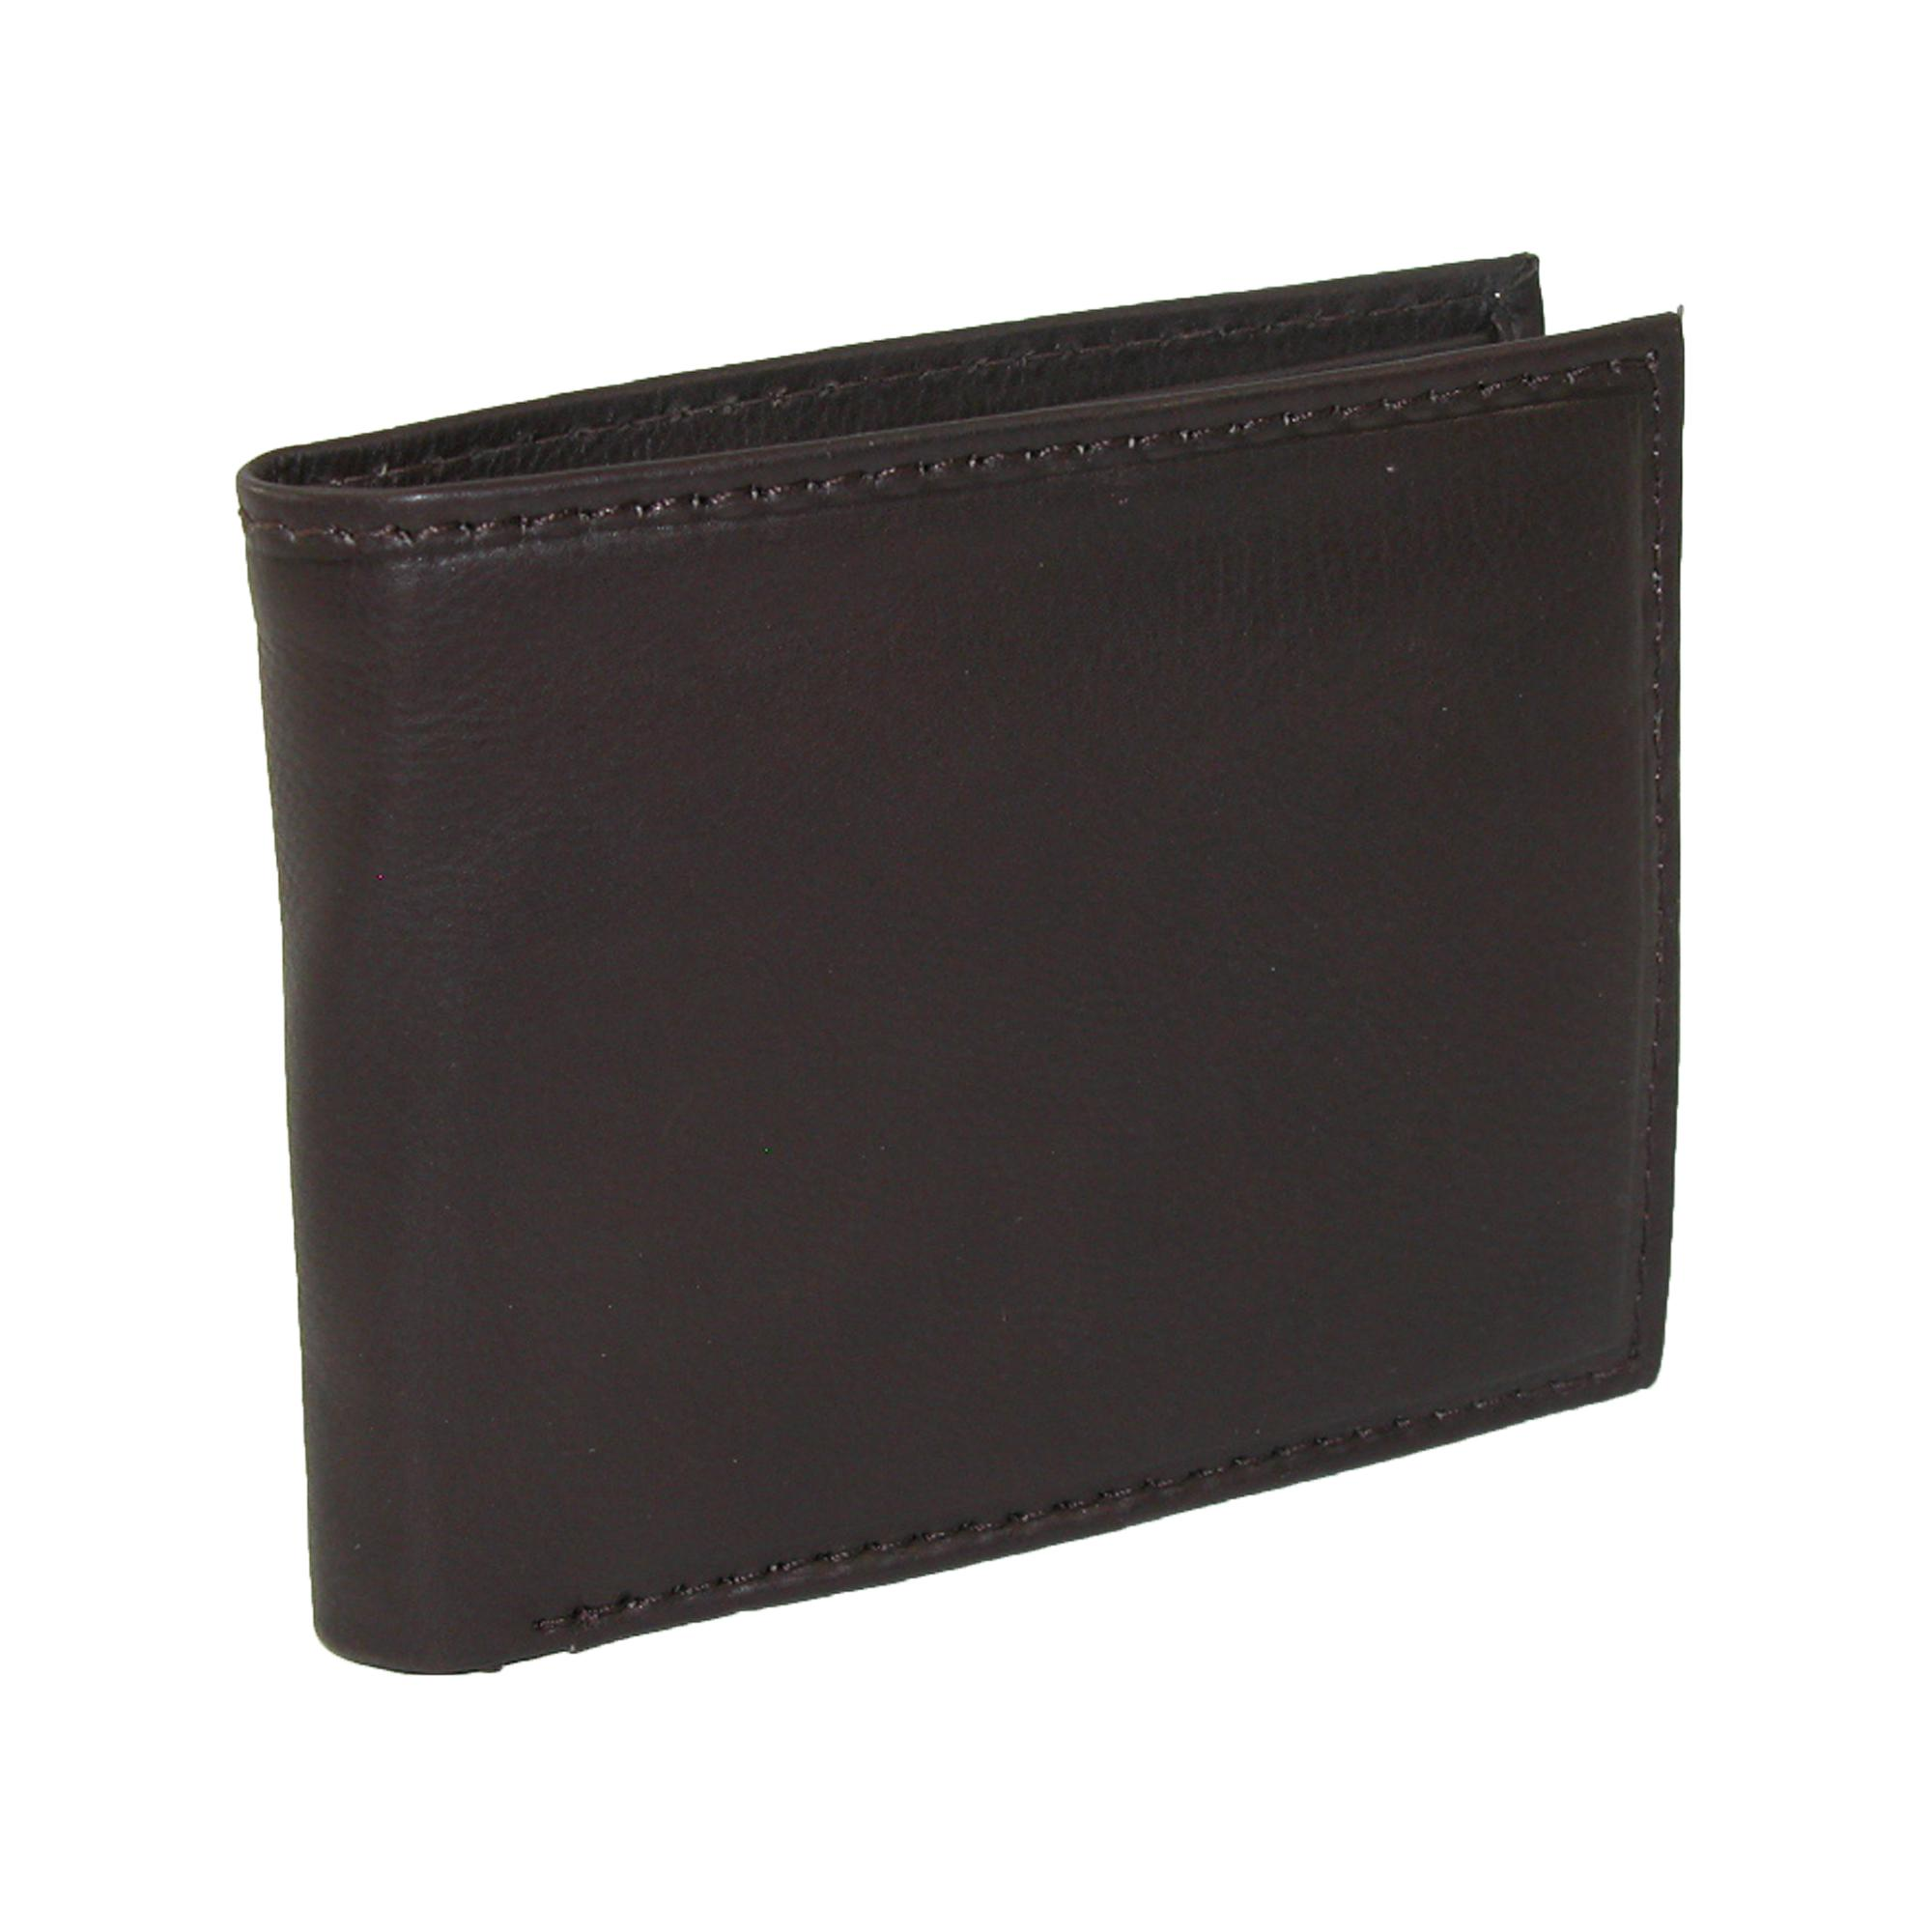 Paul_&_Taylor_Mens_Leather_with_Coin_Pocket_Bifold_Wallet_